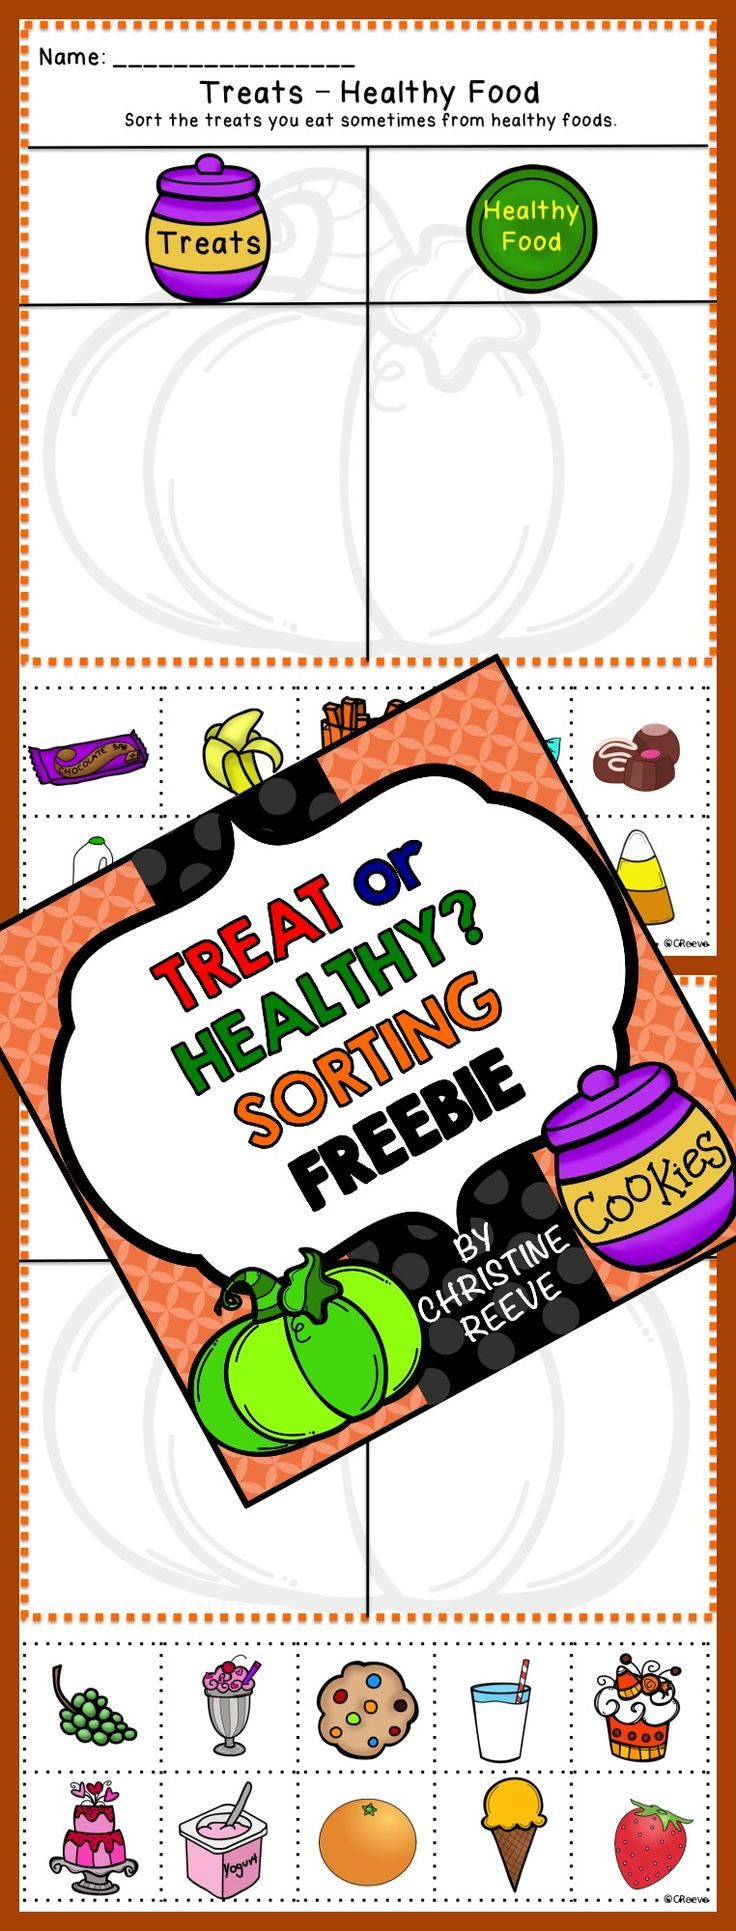 Free sweets/healthy food sorting activities. Perfect for Halloween, even if you can't use Halloween activities (no bats, ghosts or witches included). 2 cut-and-paste worksheets --or laminate them to file folders.